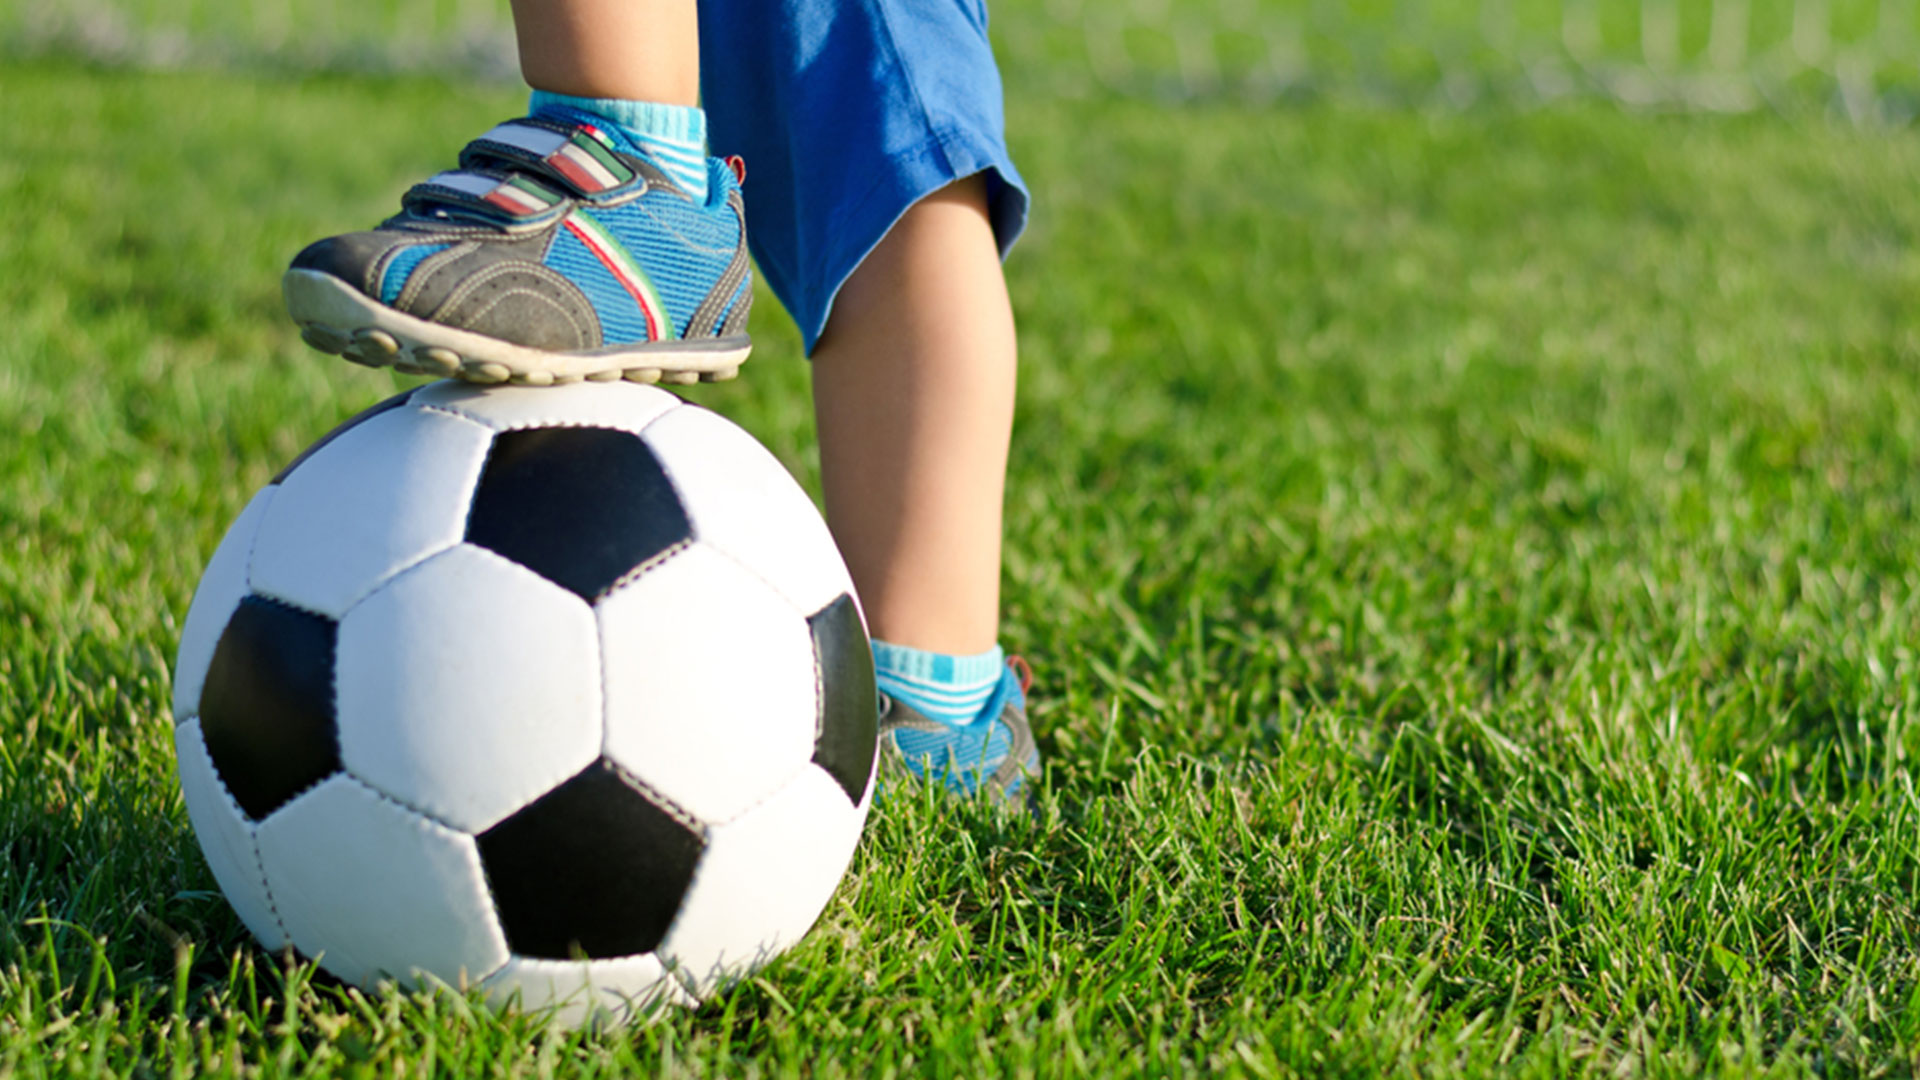 Activities And Sports How Much Is Too Much For Kids